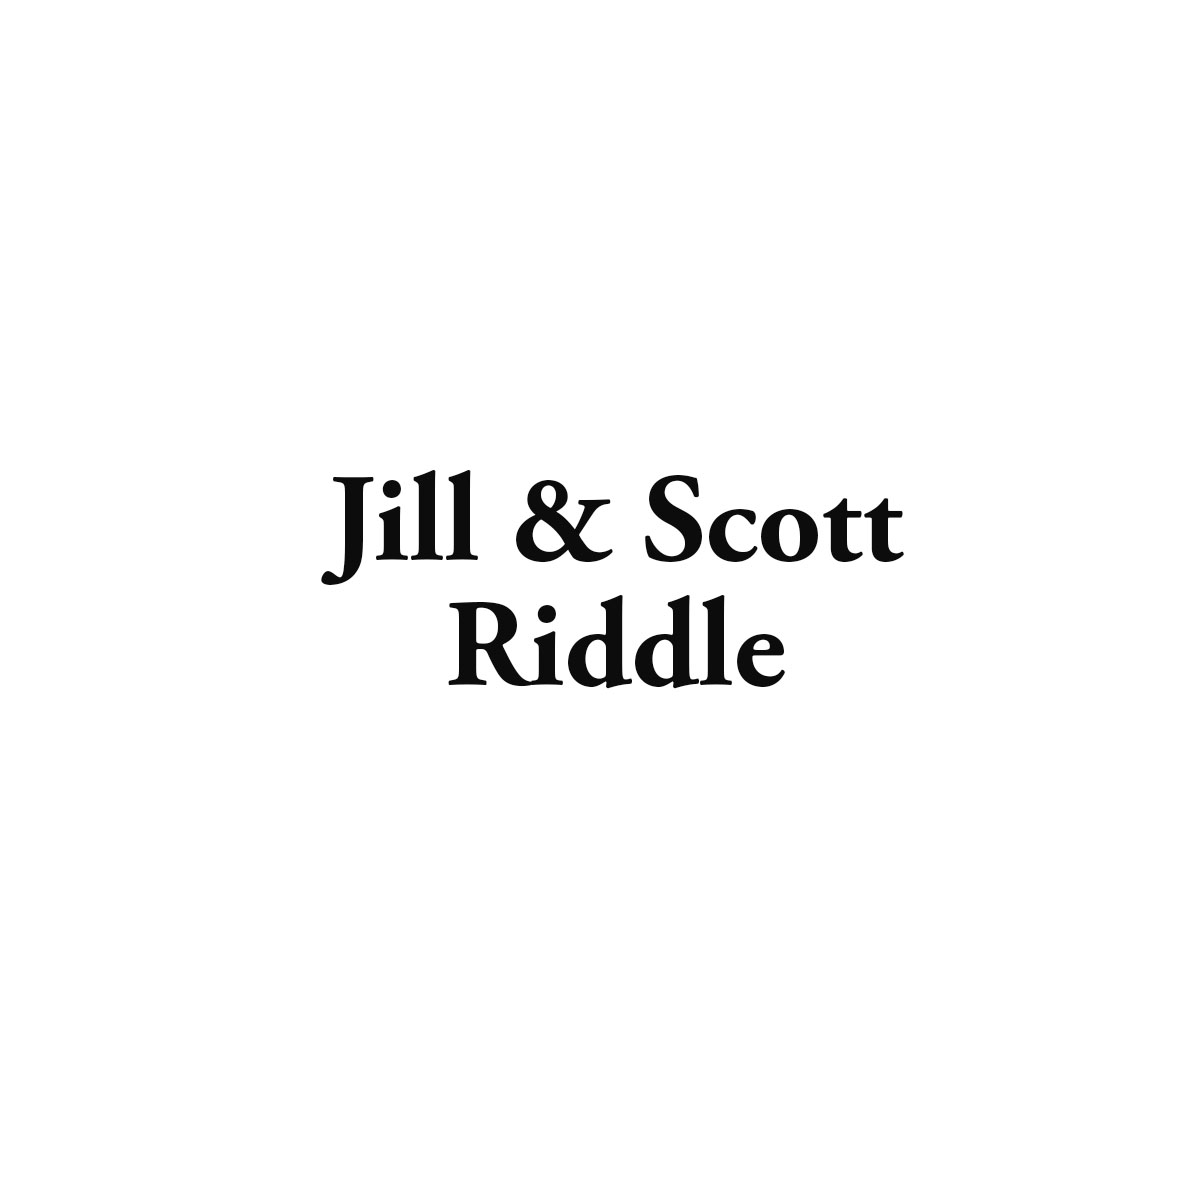 Jill and Scott Riddle